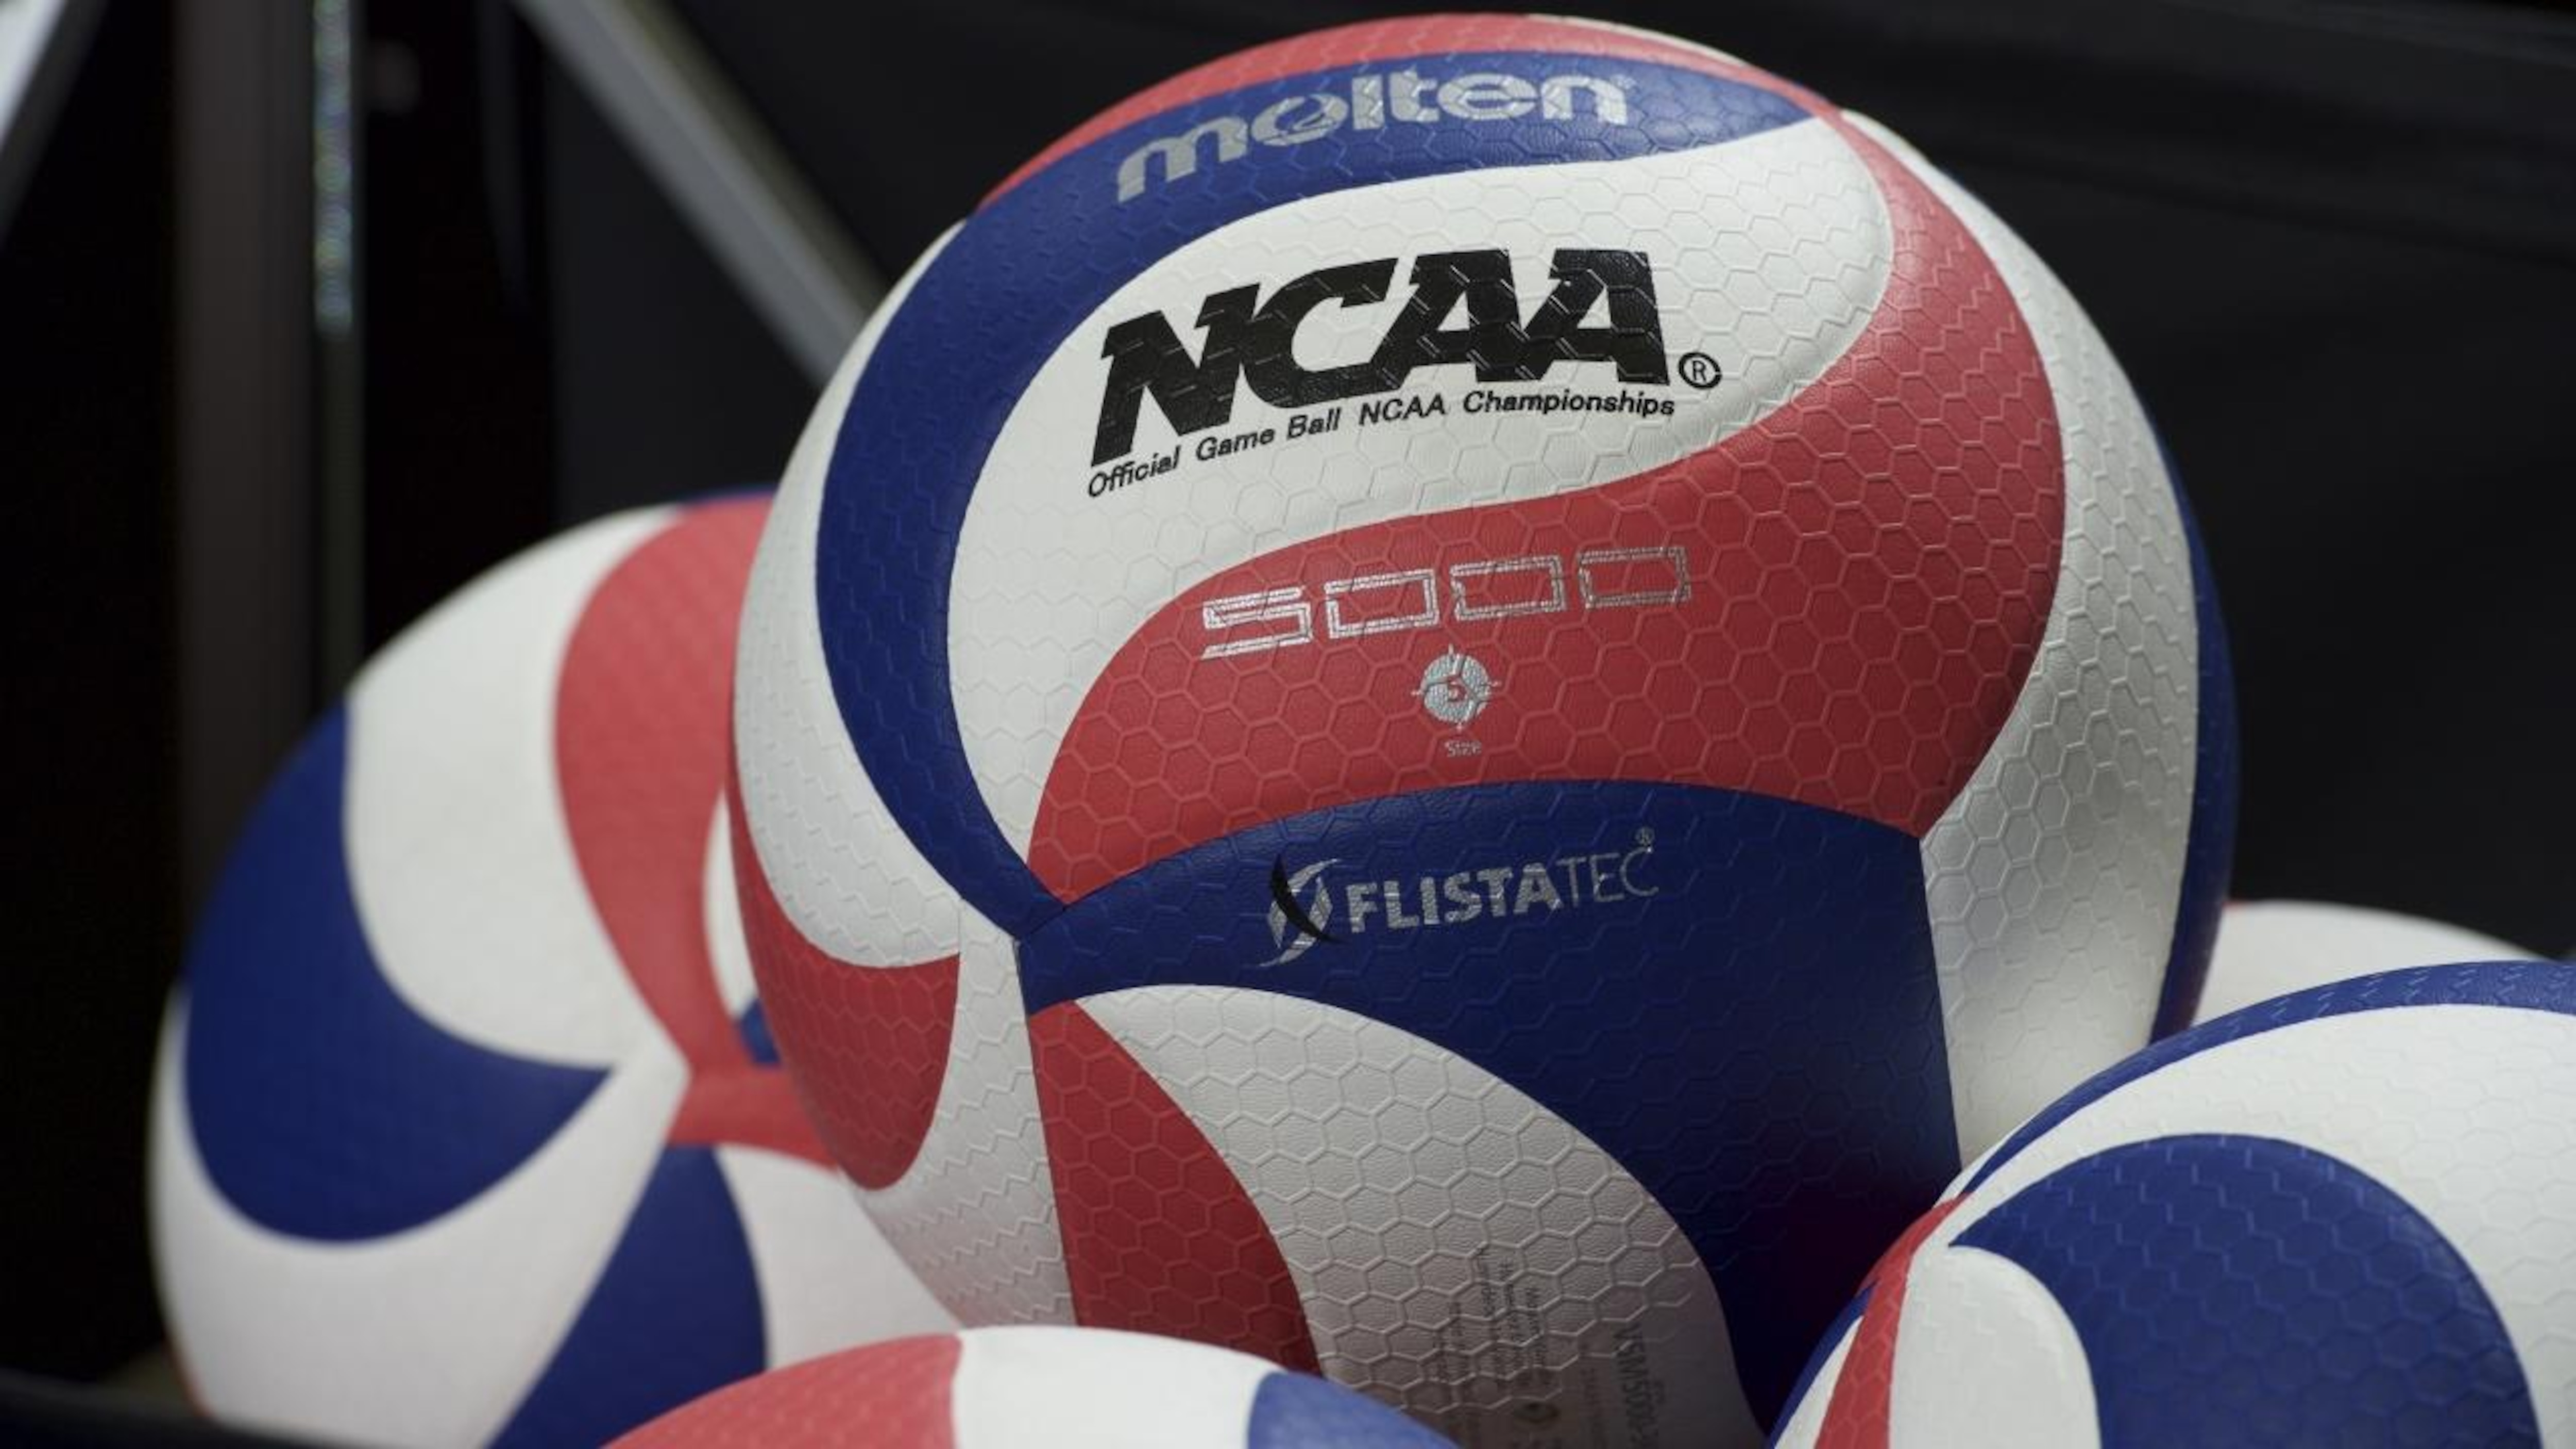 Ncaa Division Iii Men S Volleyball Committee Selects Championship Bracket Ncaa Com